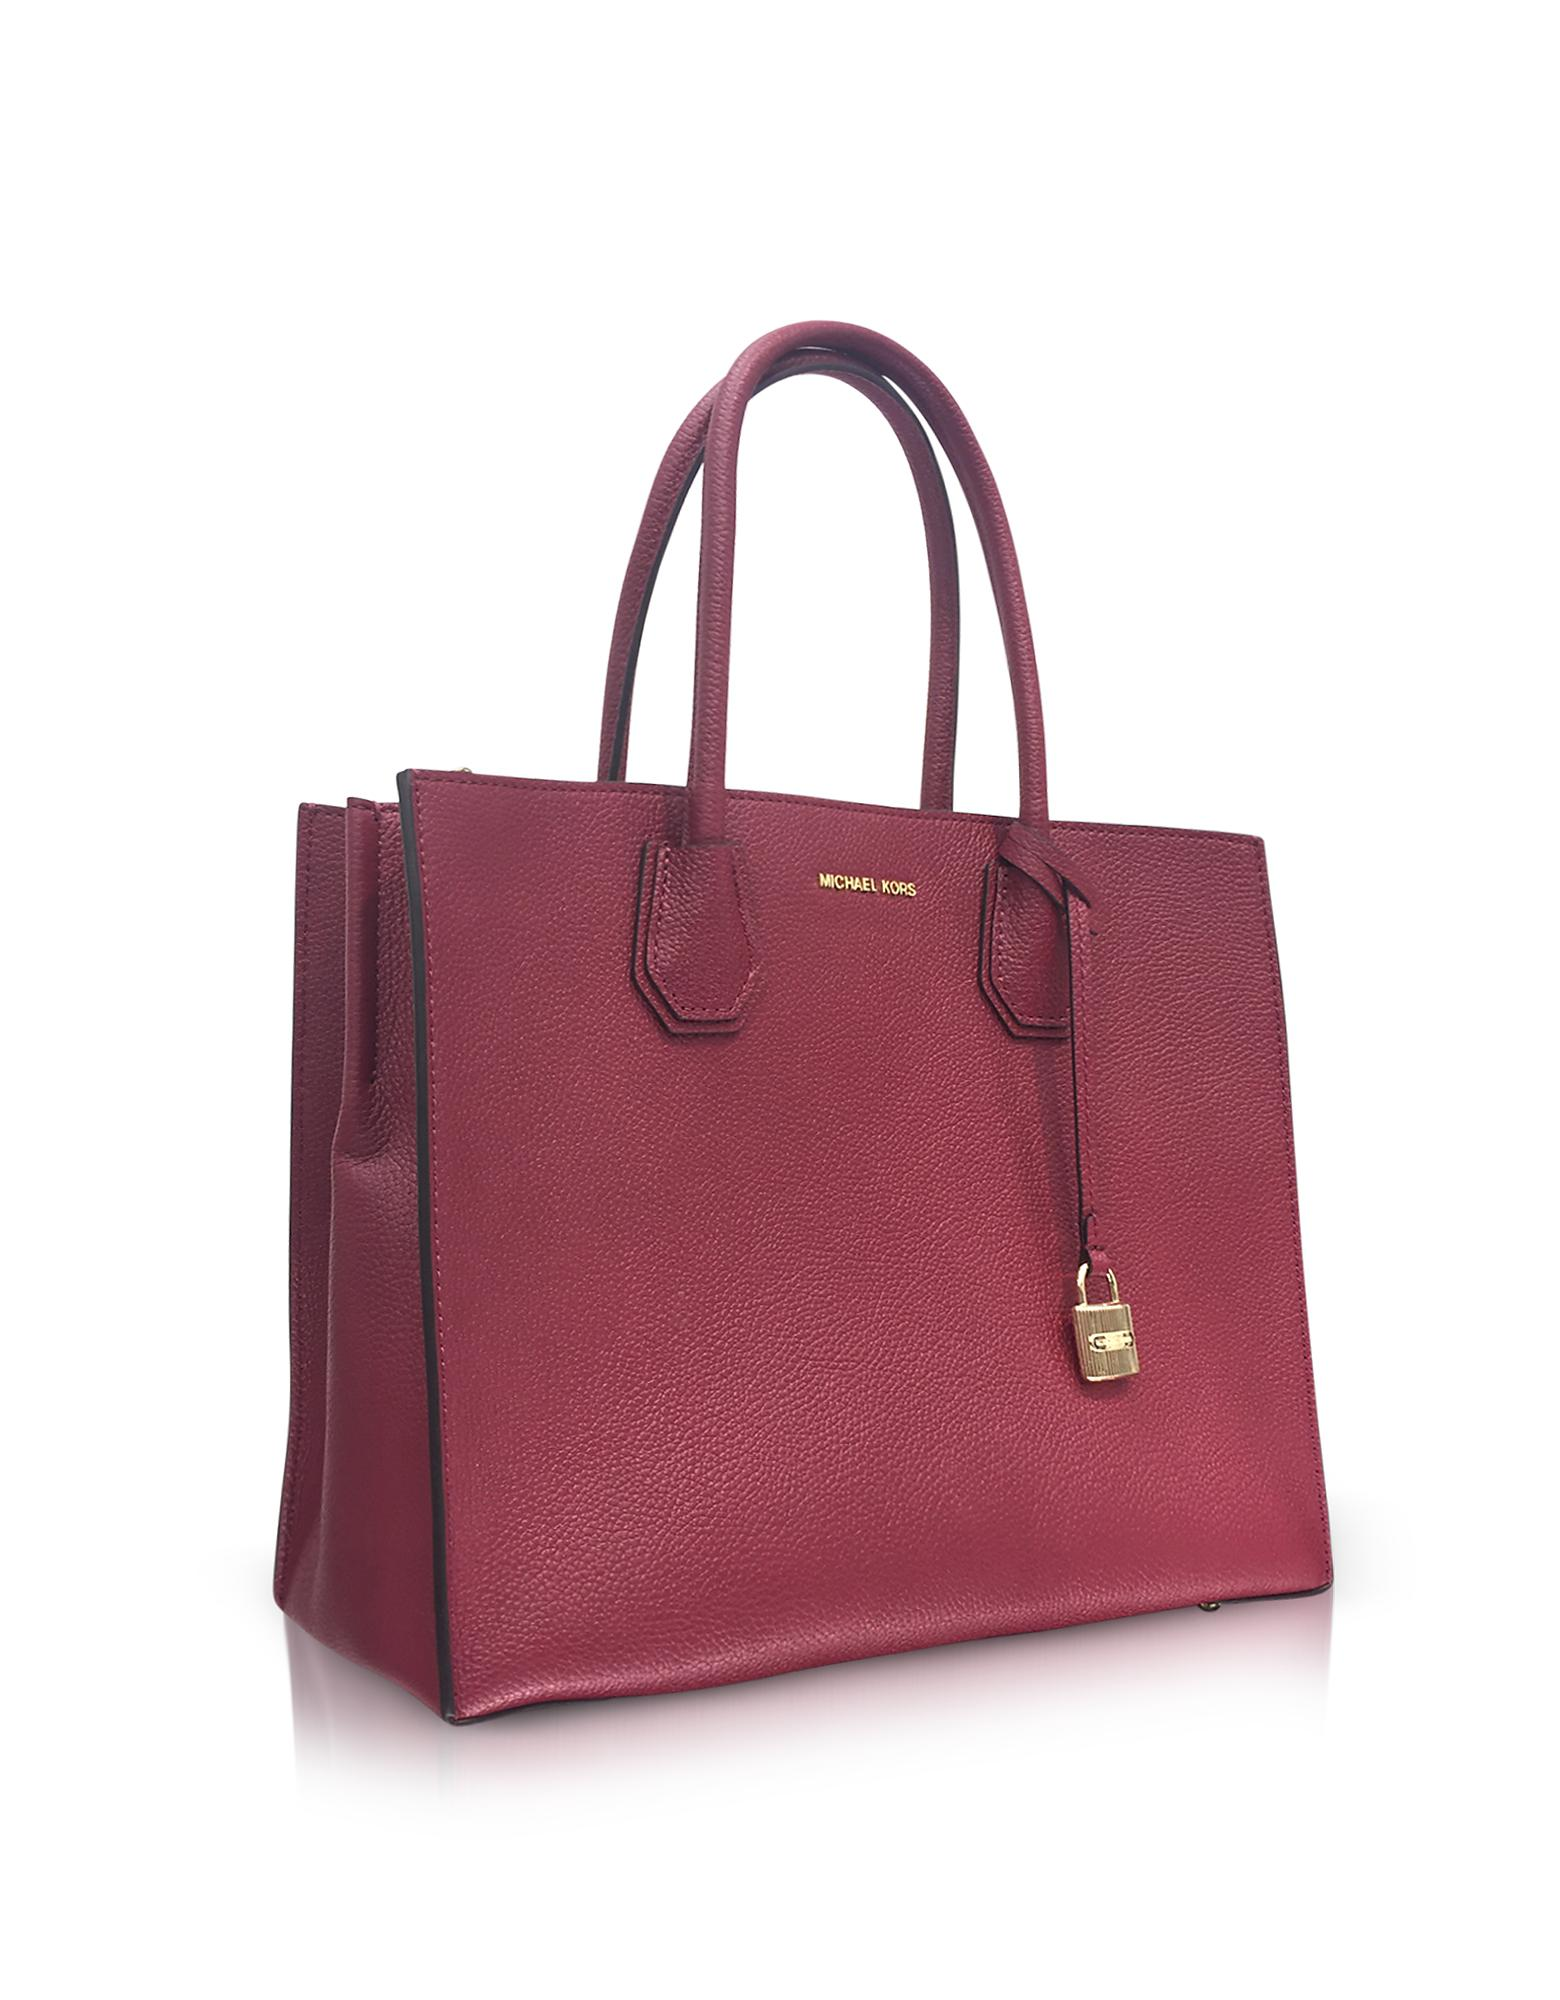 136caea3a03a Michael Kors Mercer Large Mulberry Pebble Leather Convertible Tote ...